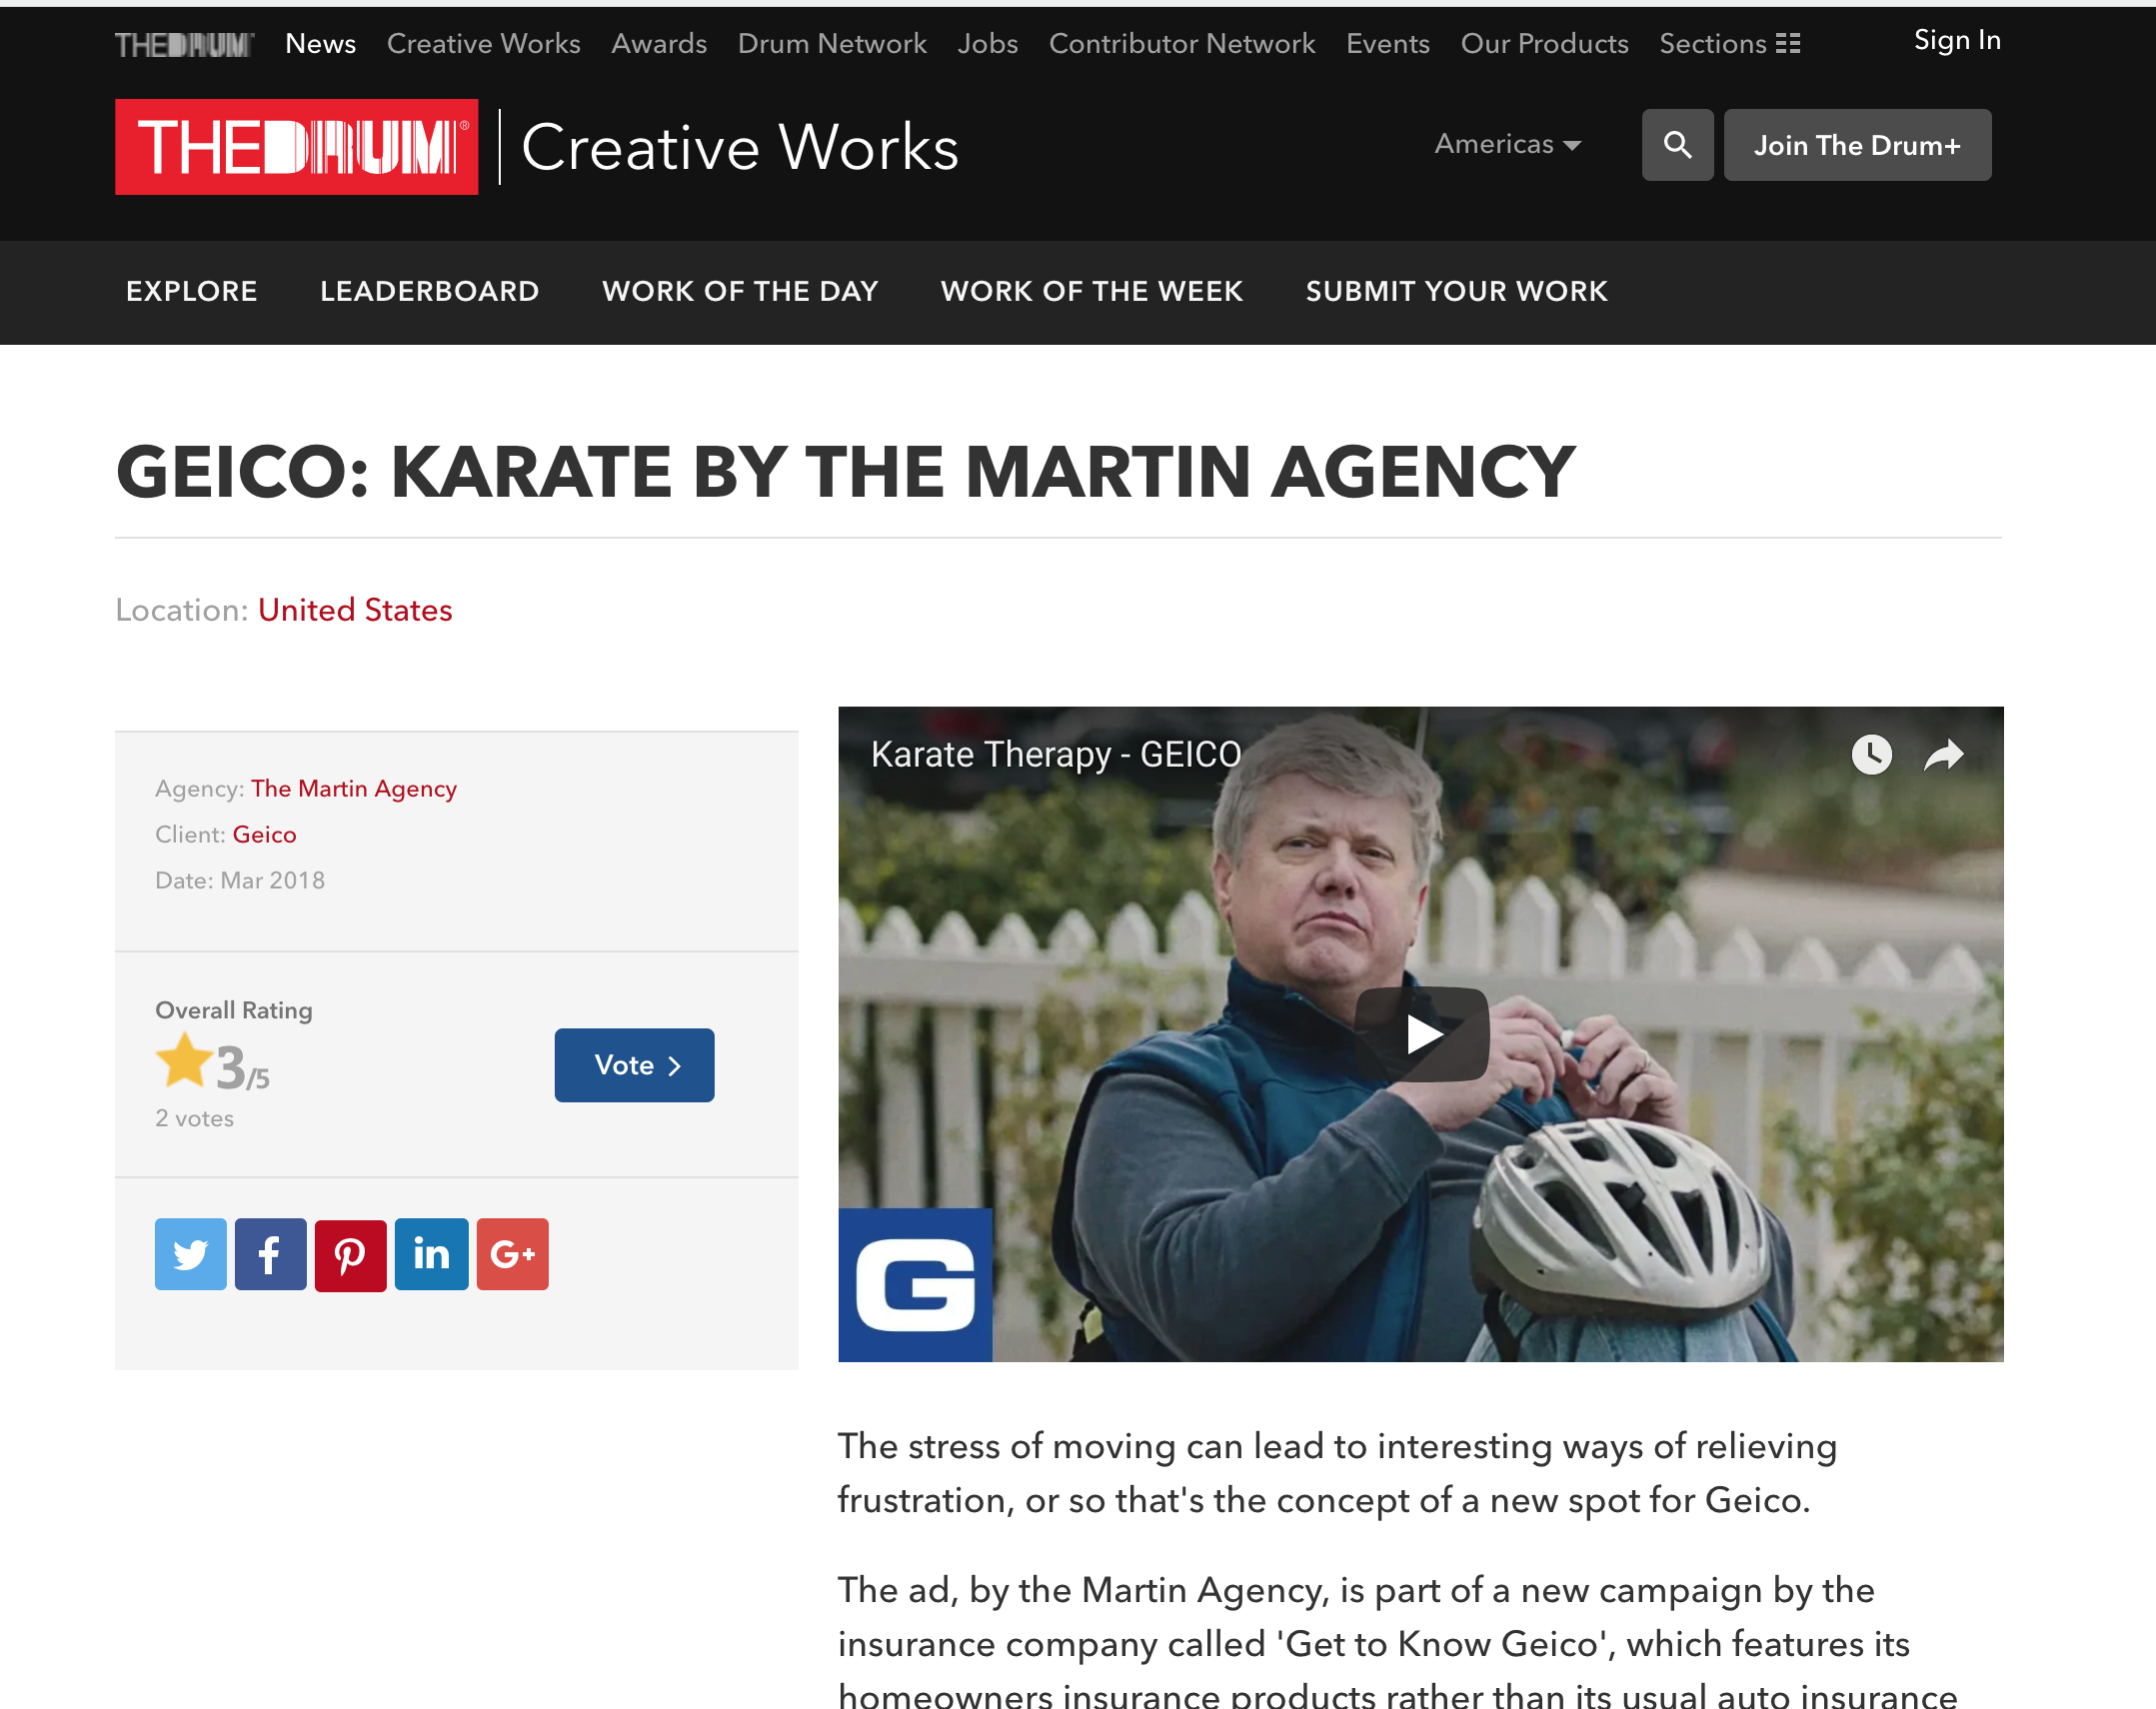 GEICO: Karate by The Martin Agency